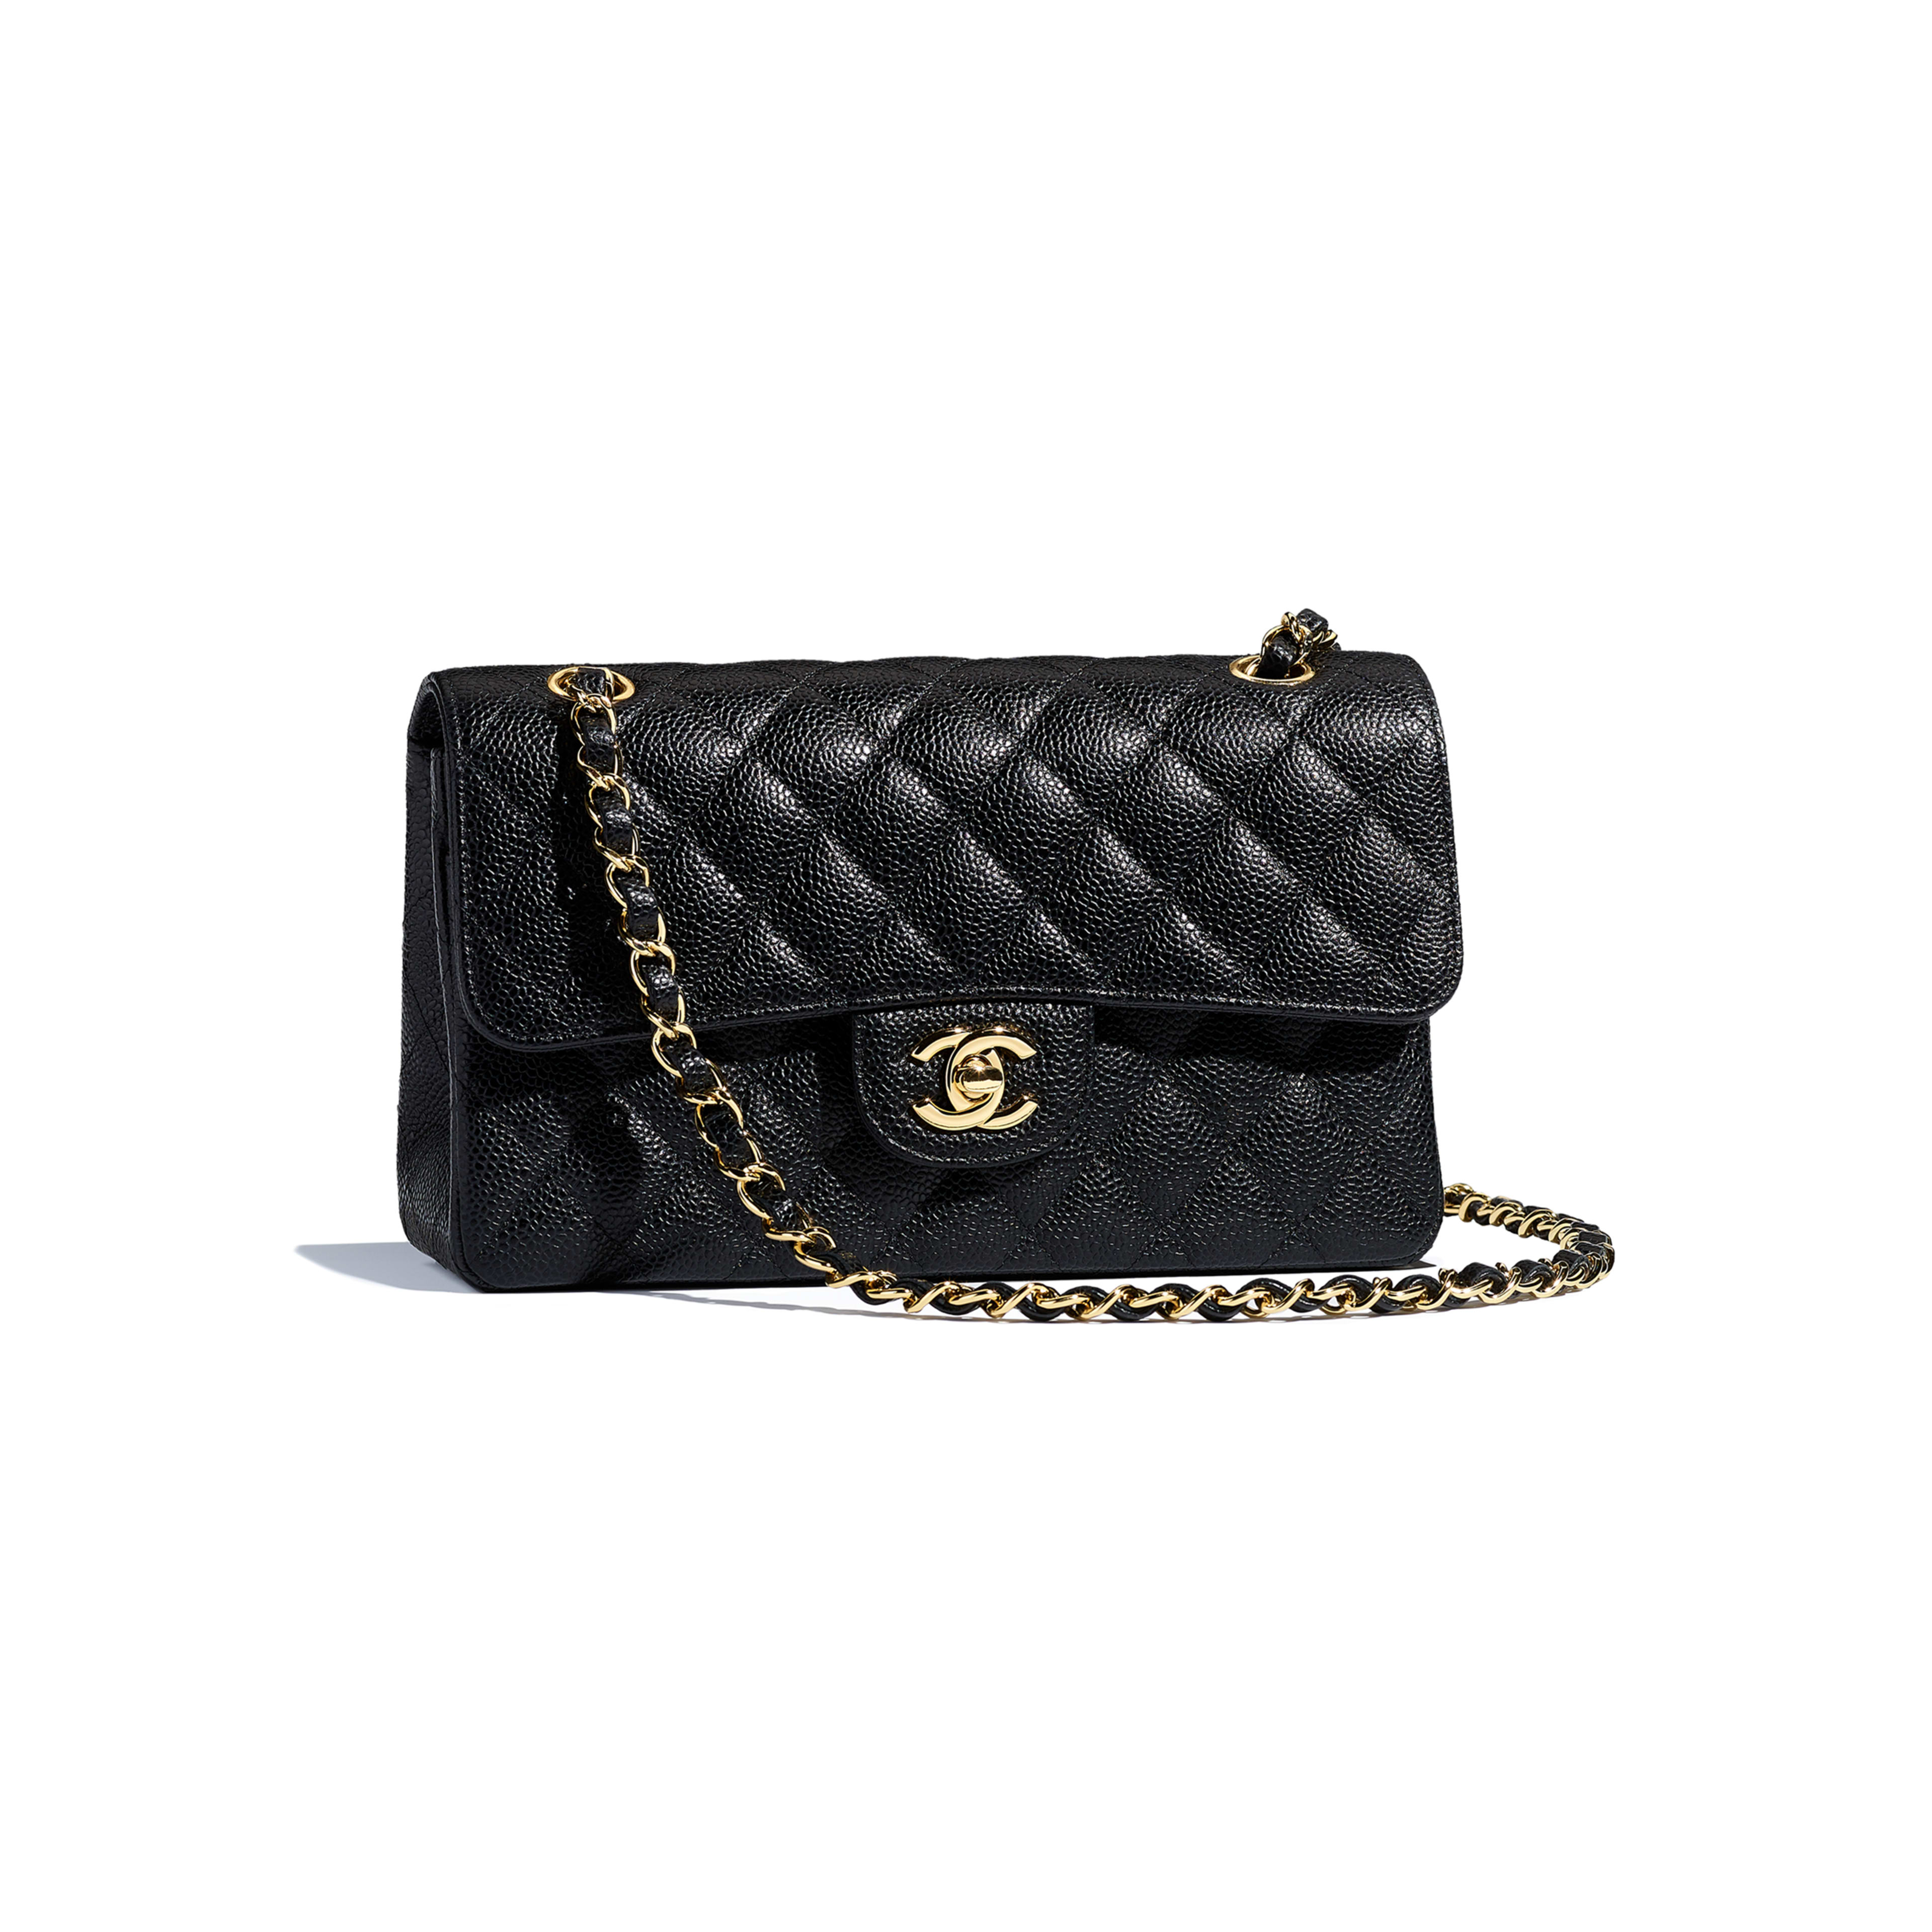 Grained Calfskin Gold Tone Metal Black Small Classic Handbag Chanel